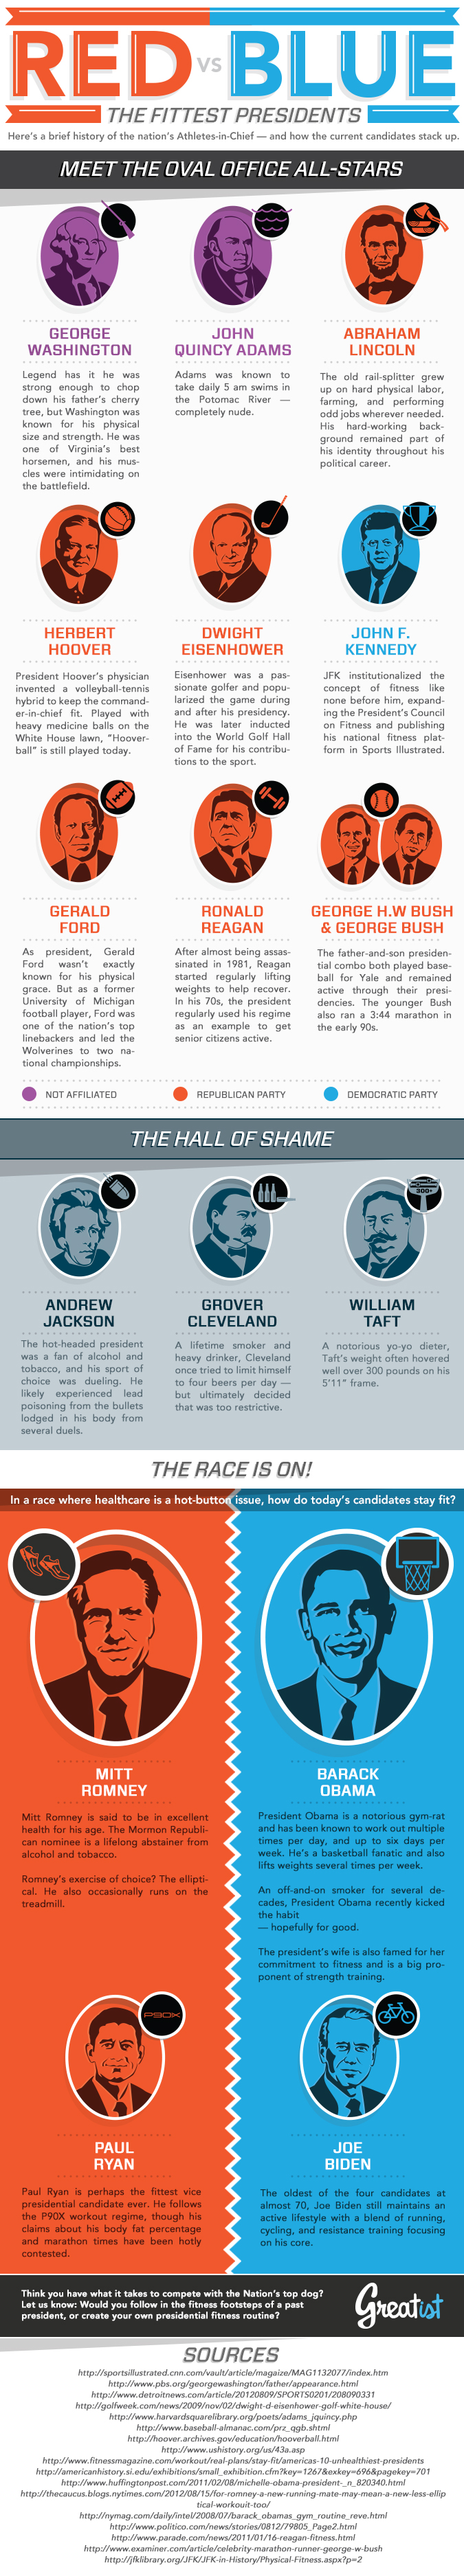 Red Vs. Blue: The Fittest Presidents